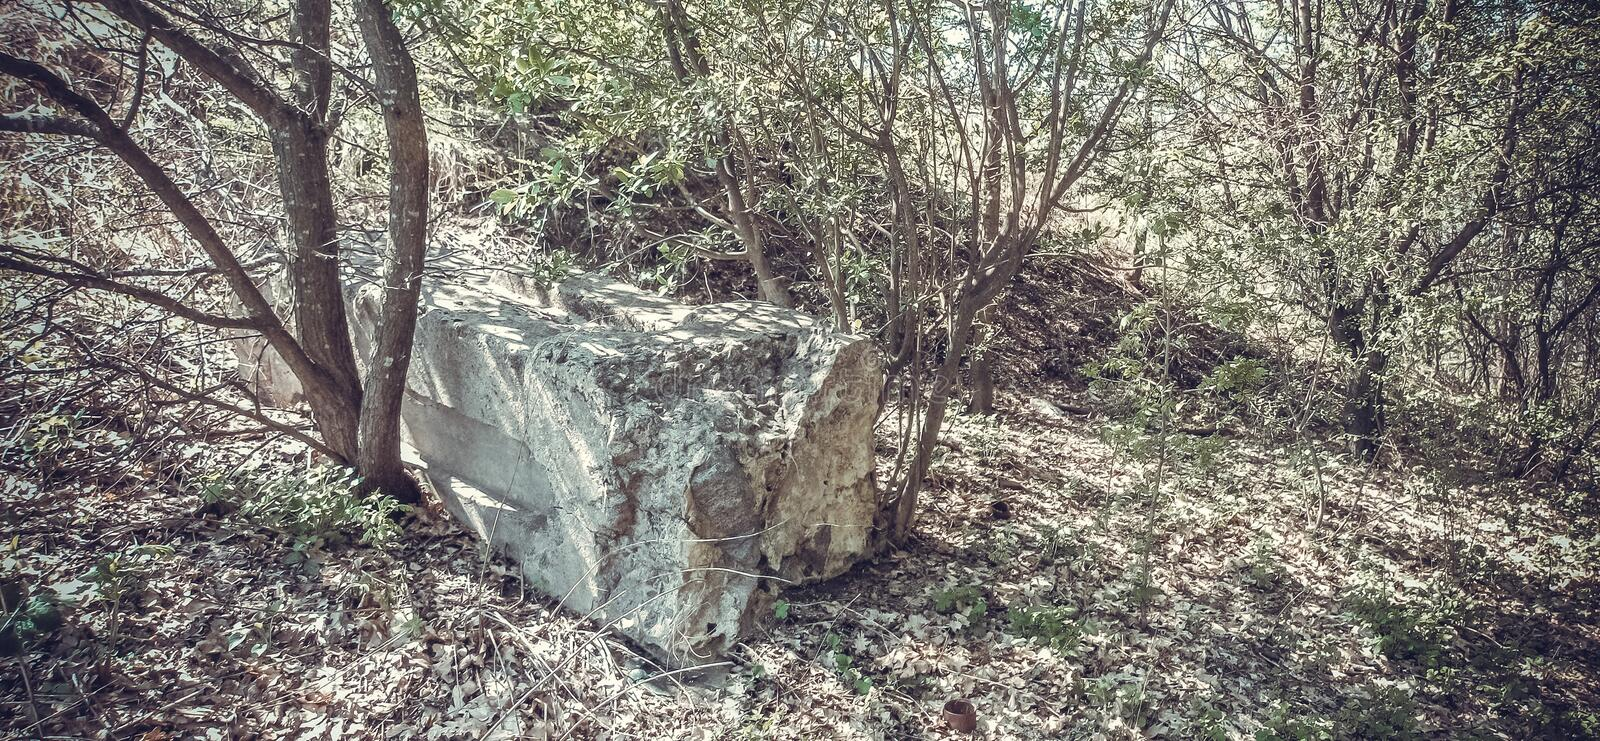 A forgotten grave in the woods. Ancient Cossack mass grave. Destroyed and desecrated by black archeologists monument. Ukraine, Poltava region. Places of former royalty free stock images